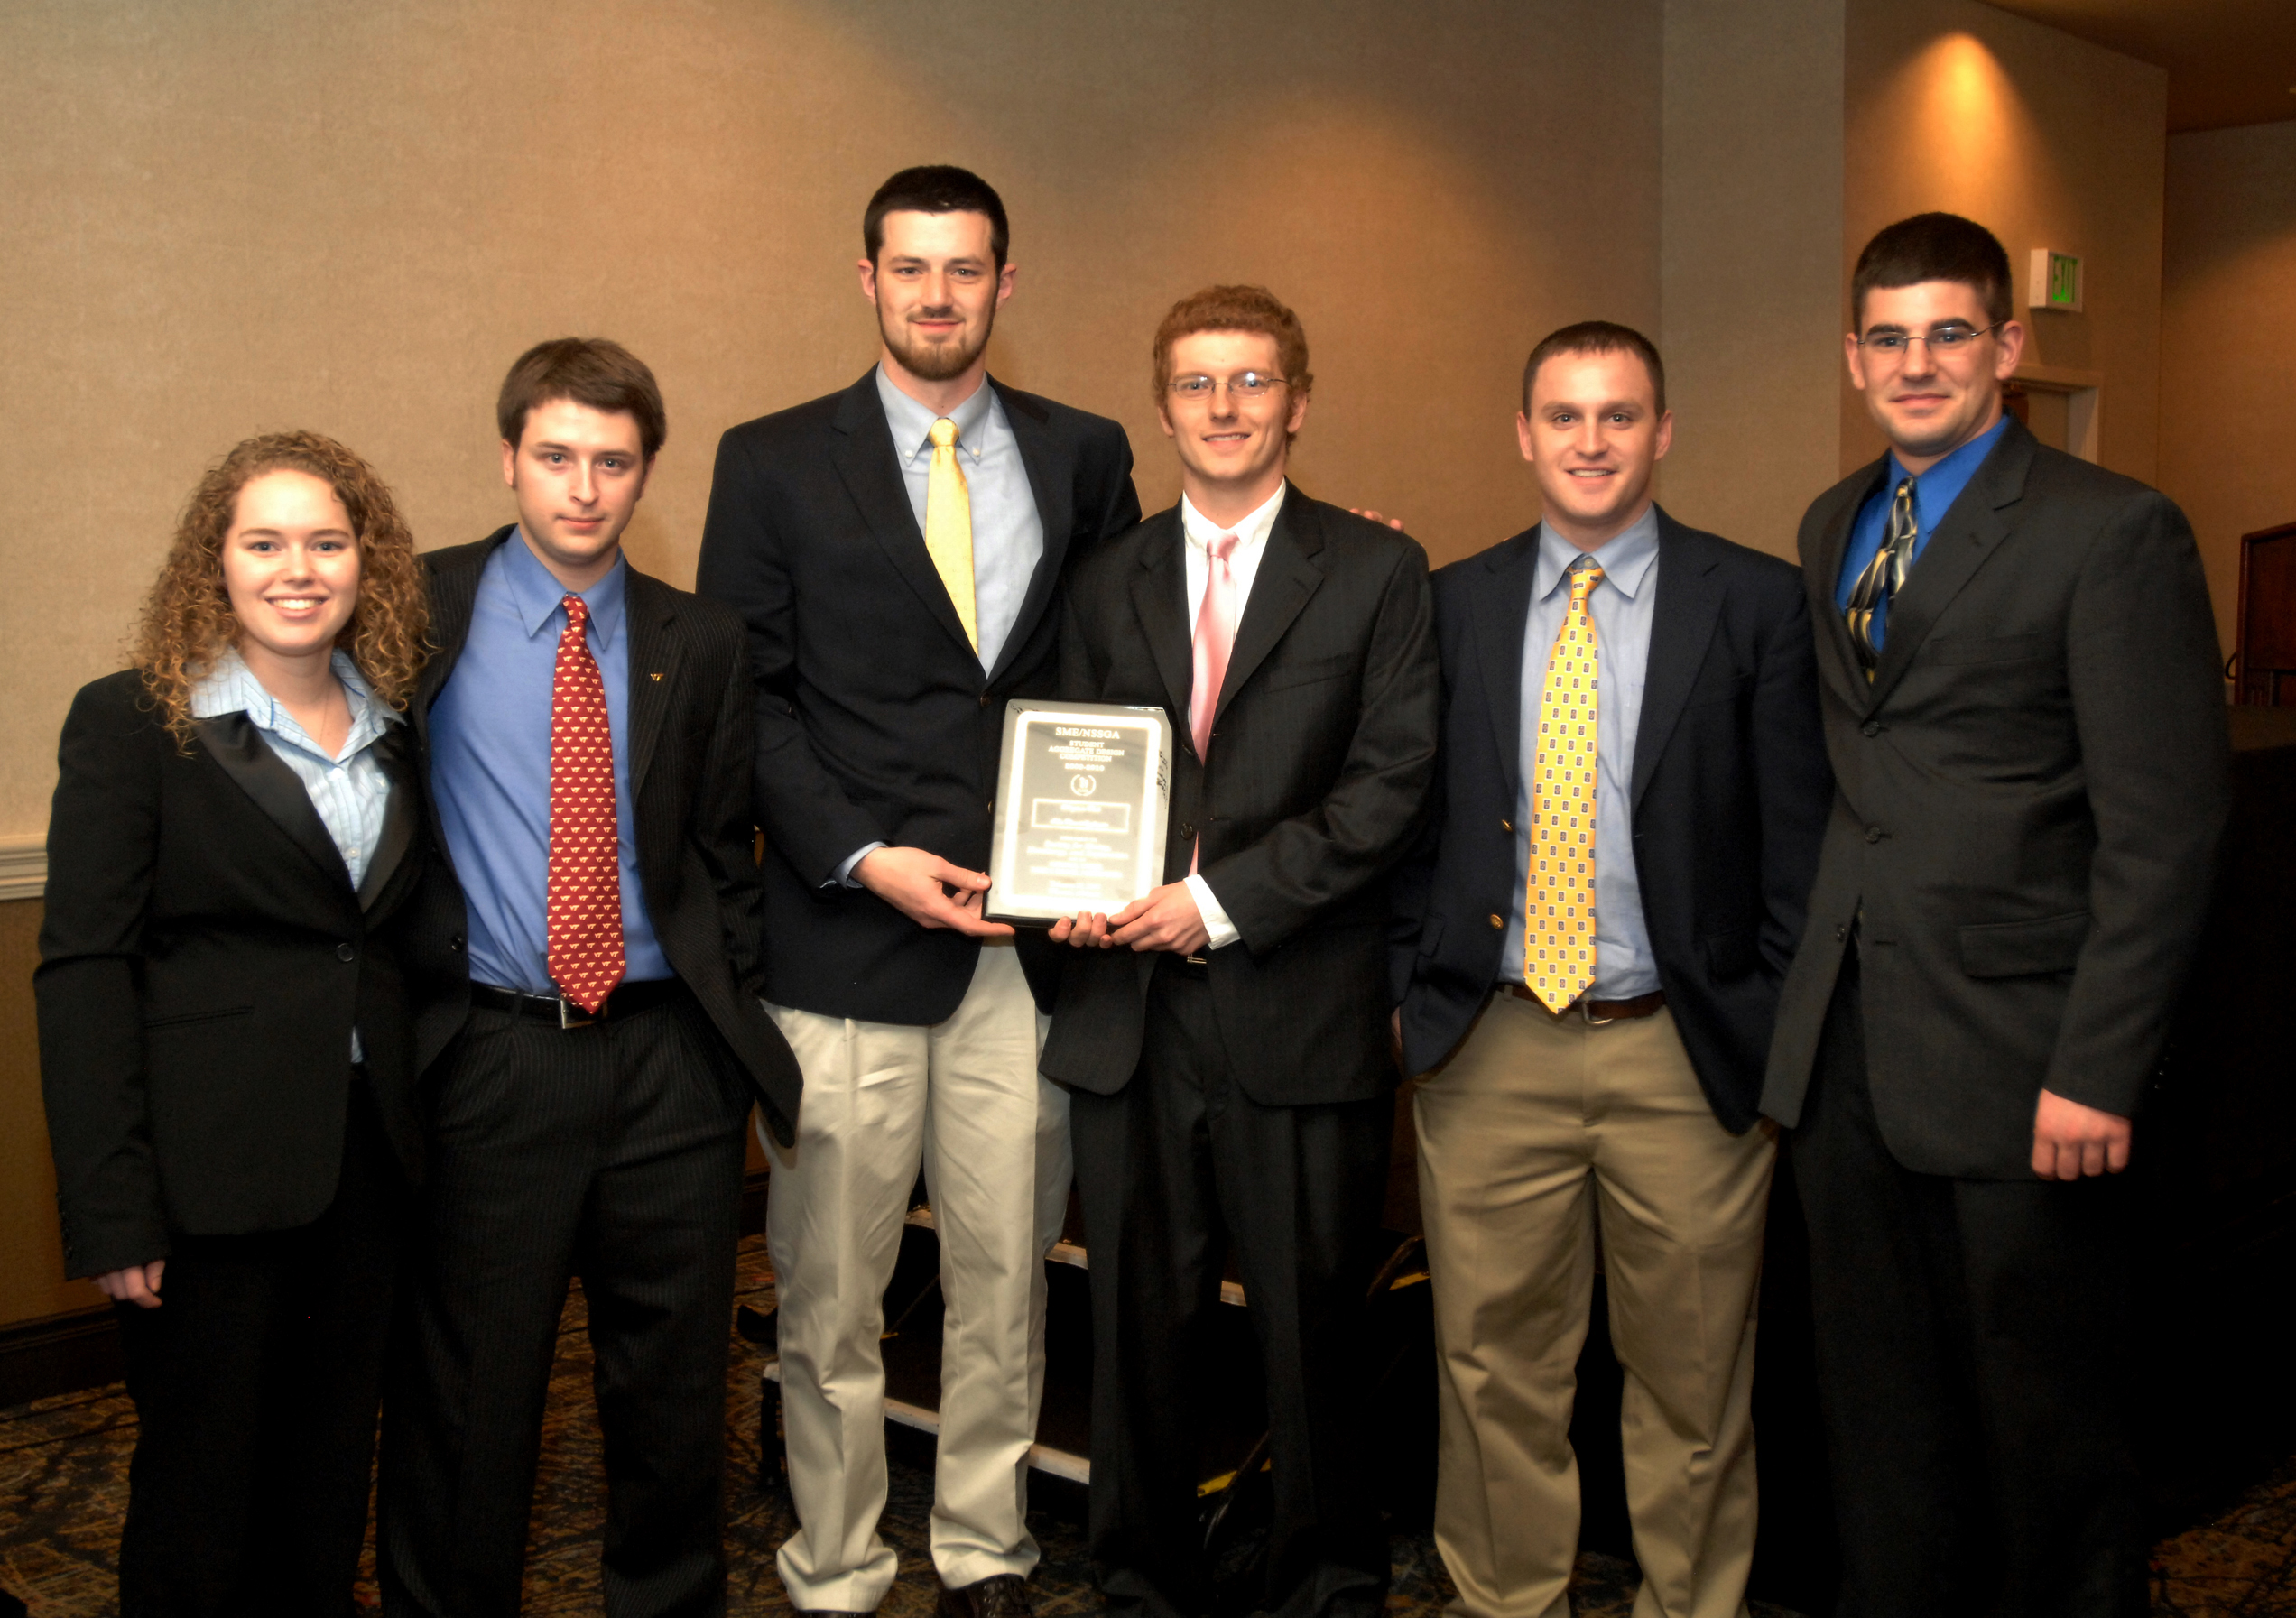 Members of New River Aggregates are pictured with their top prize in this year's SME/NSSGA Student Design Competition. Left to right are: Susie Underwood, Scott Hutchins, Ben Fahrman, Blane Bowers, Ricky Rose and Dan Sadtler.